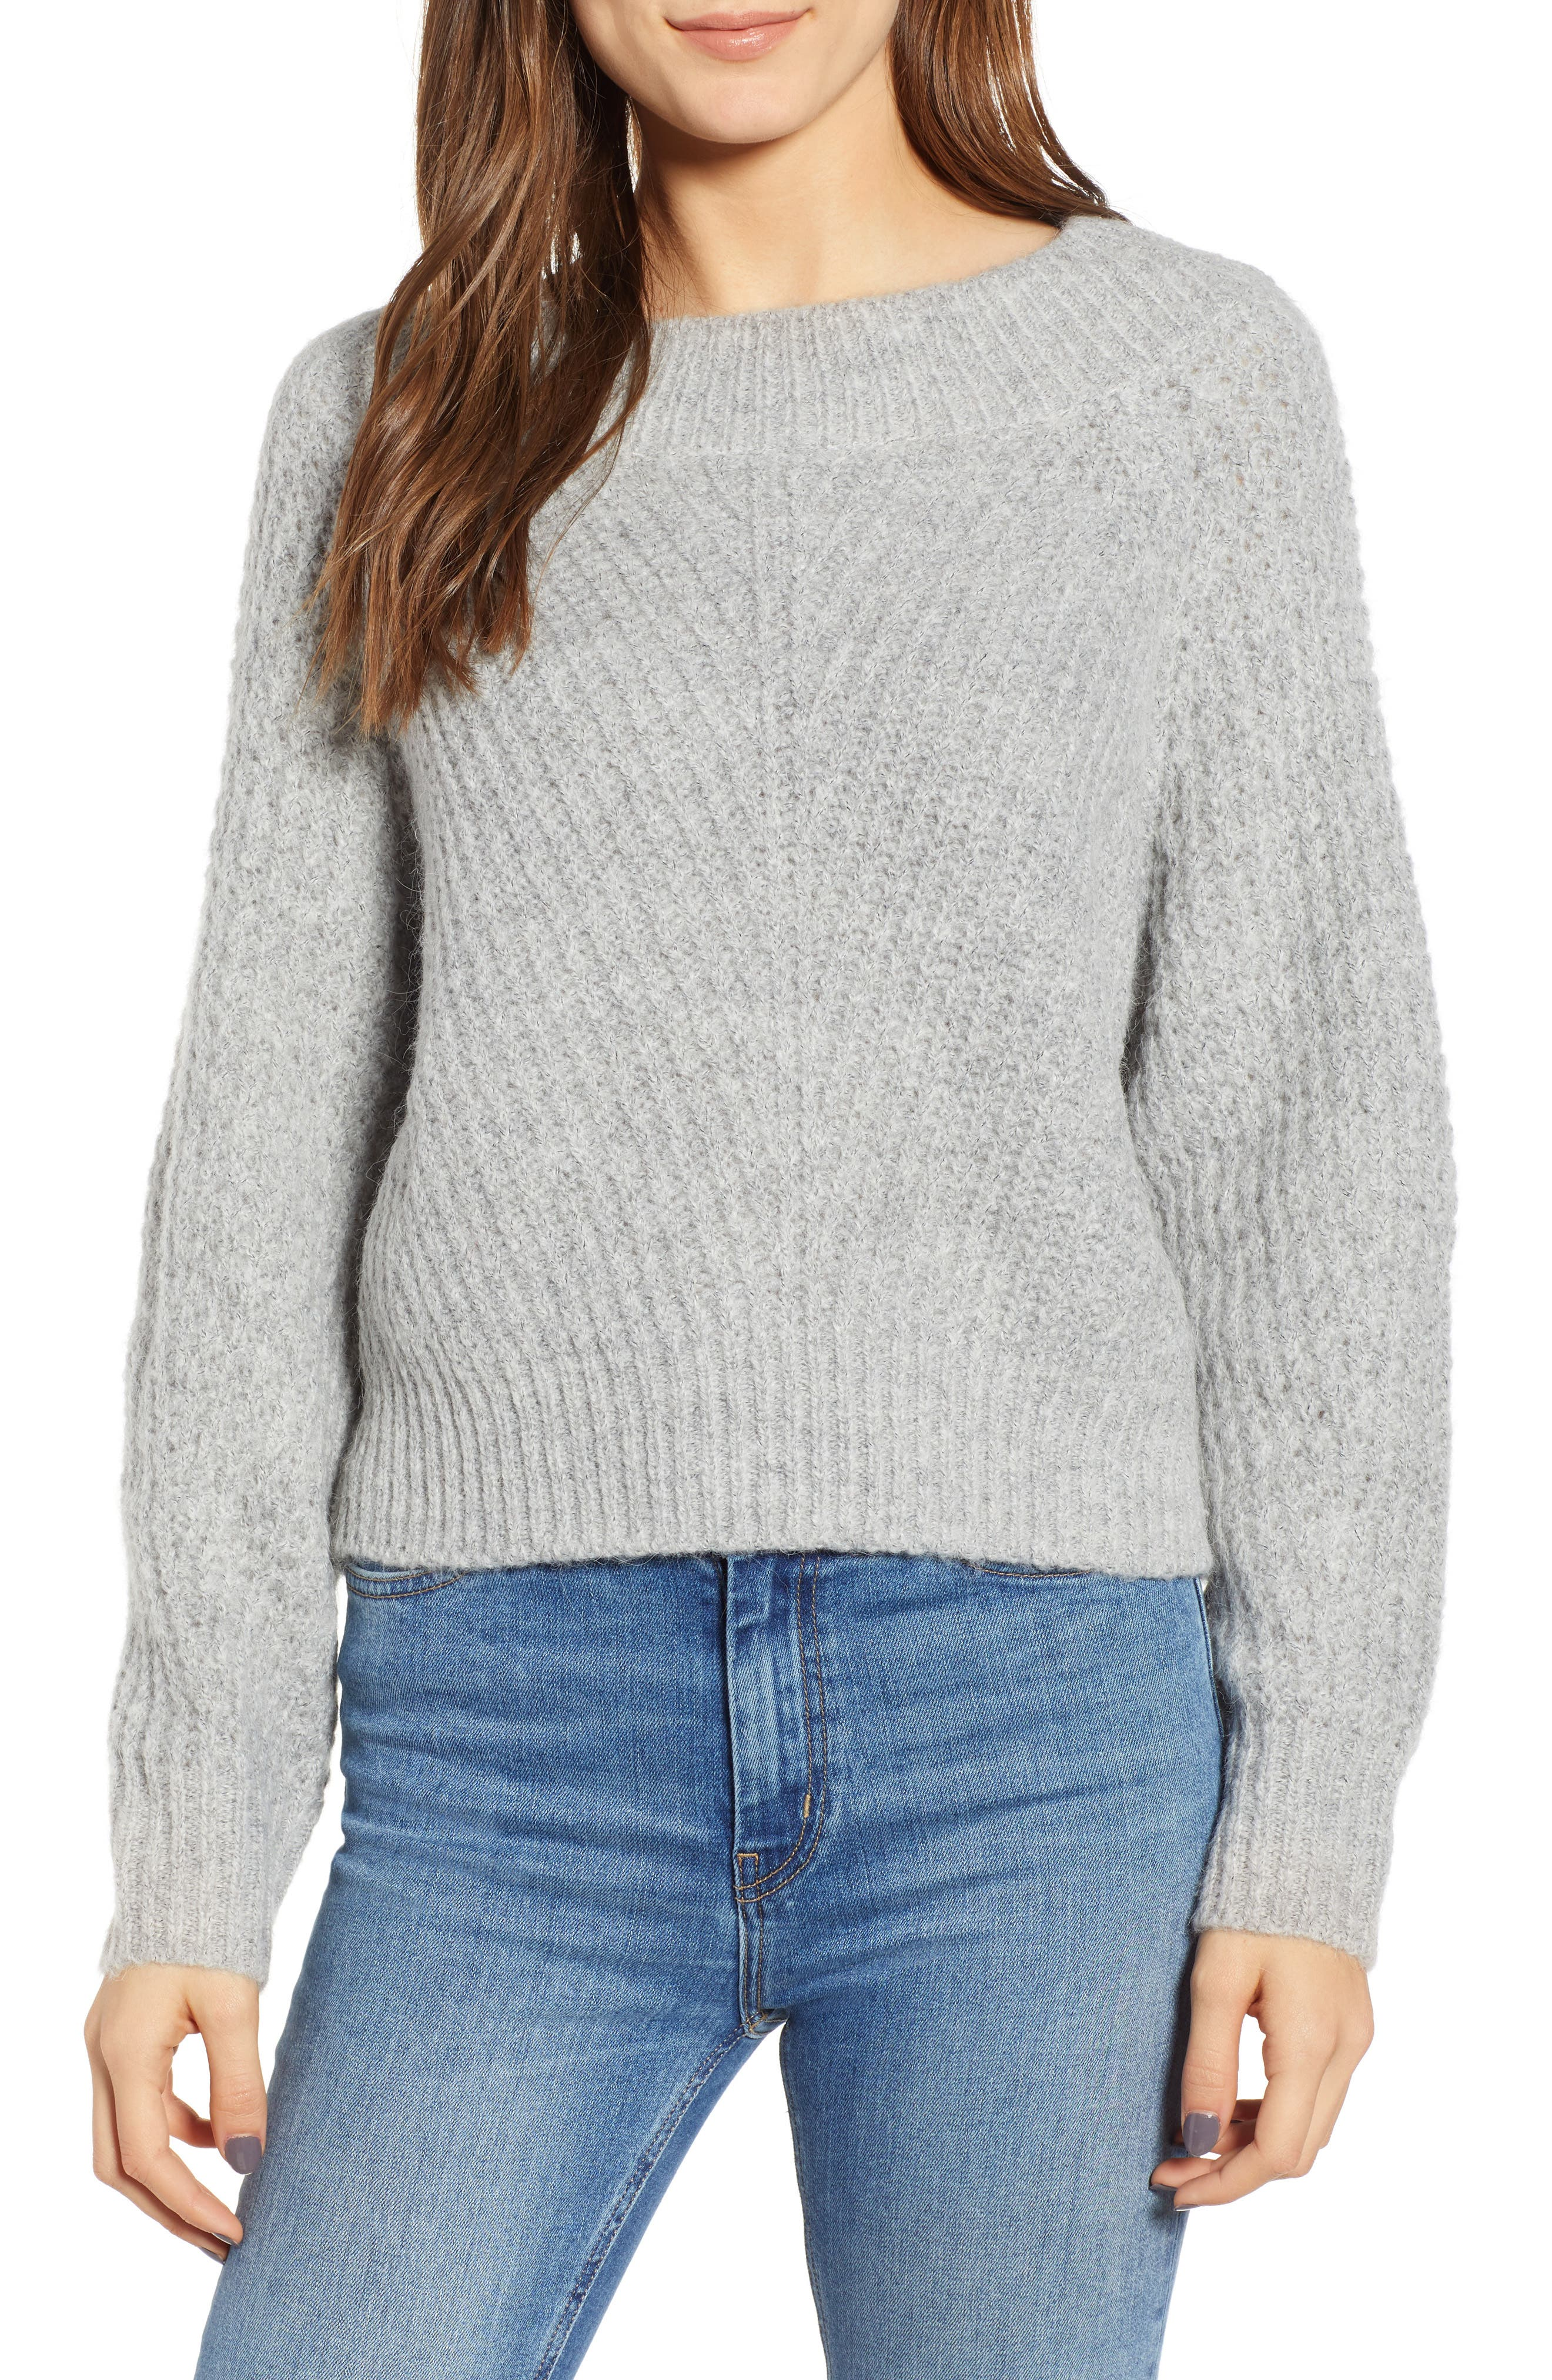 Chunky Crewneck Pullover Sweater,                             Main thumbnail 1, color,                             GREY PEARL HEATHER